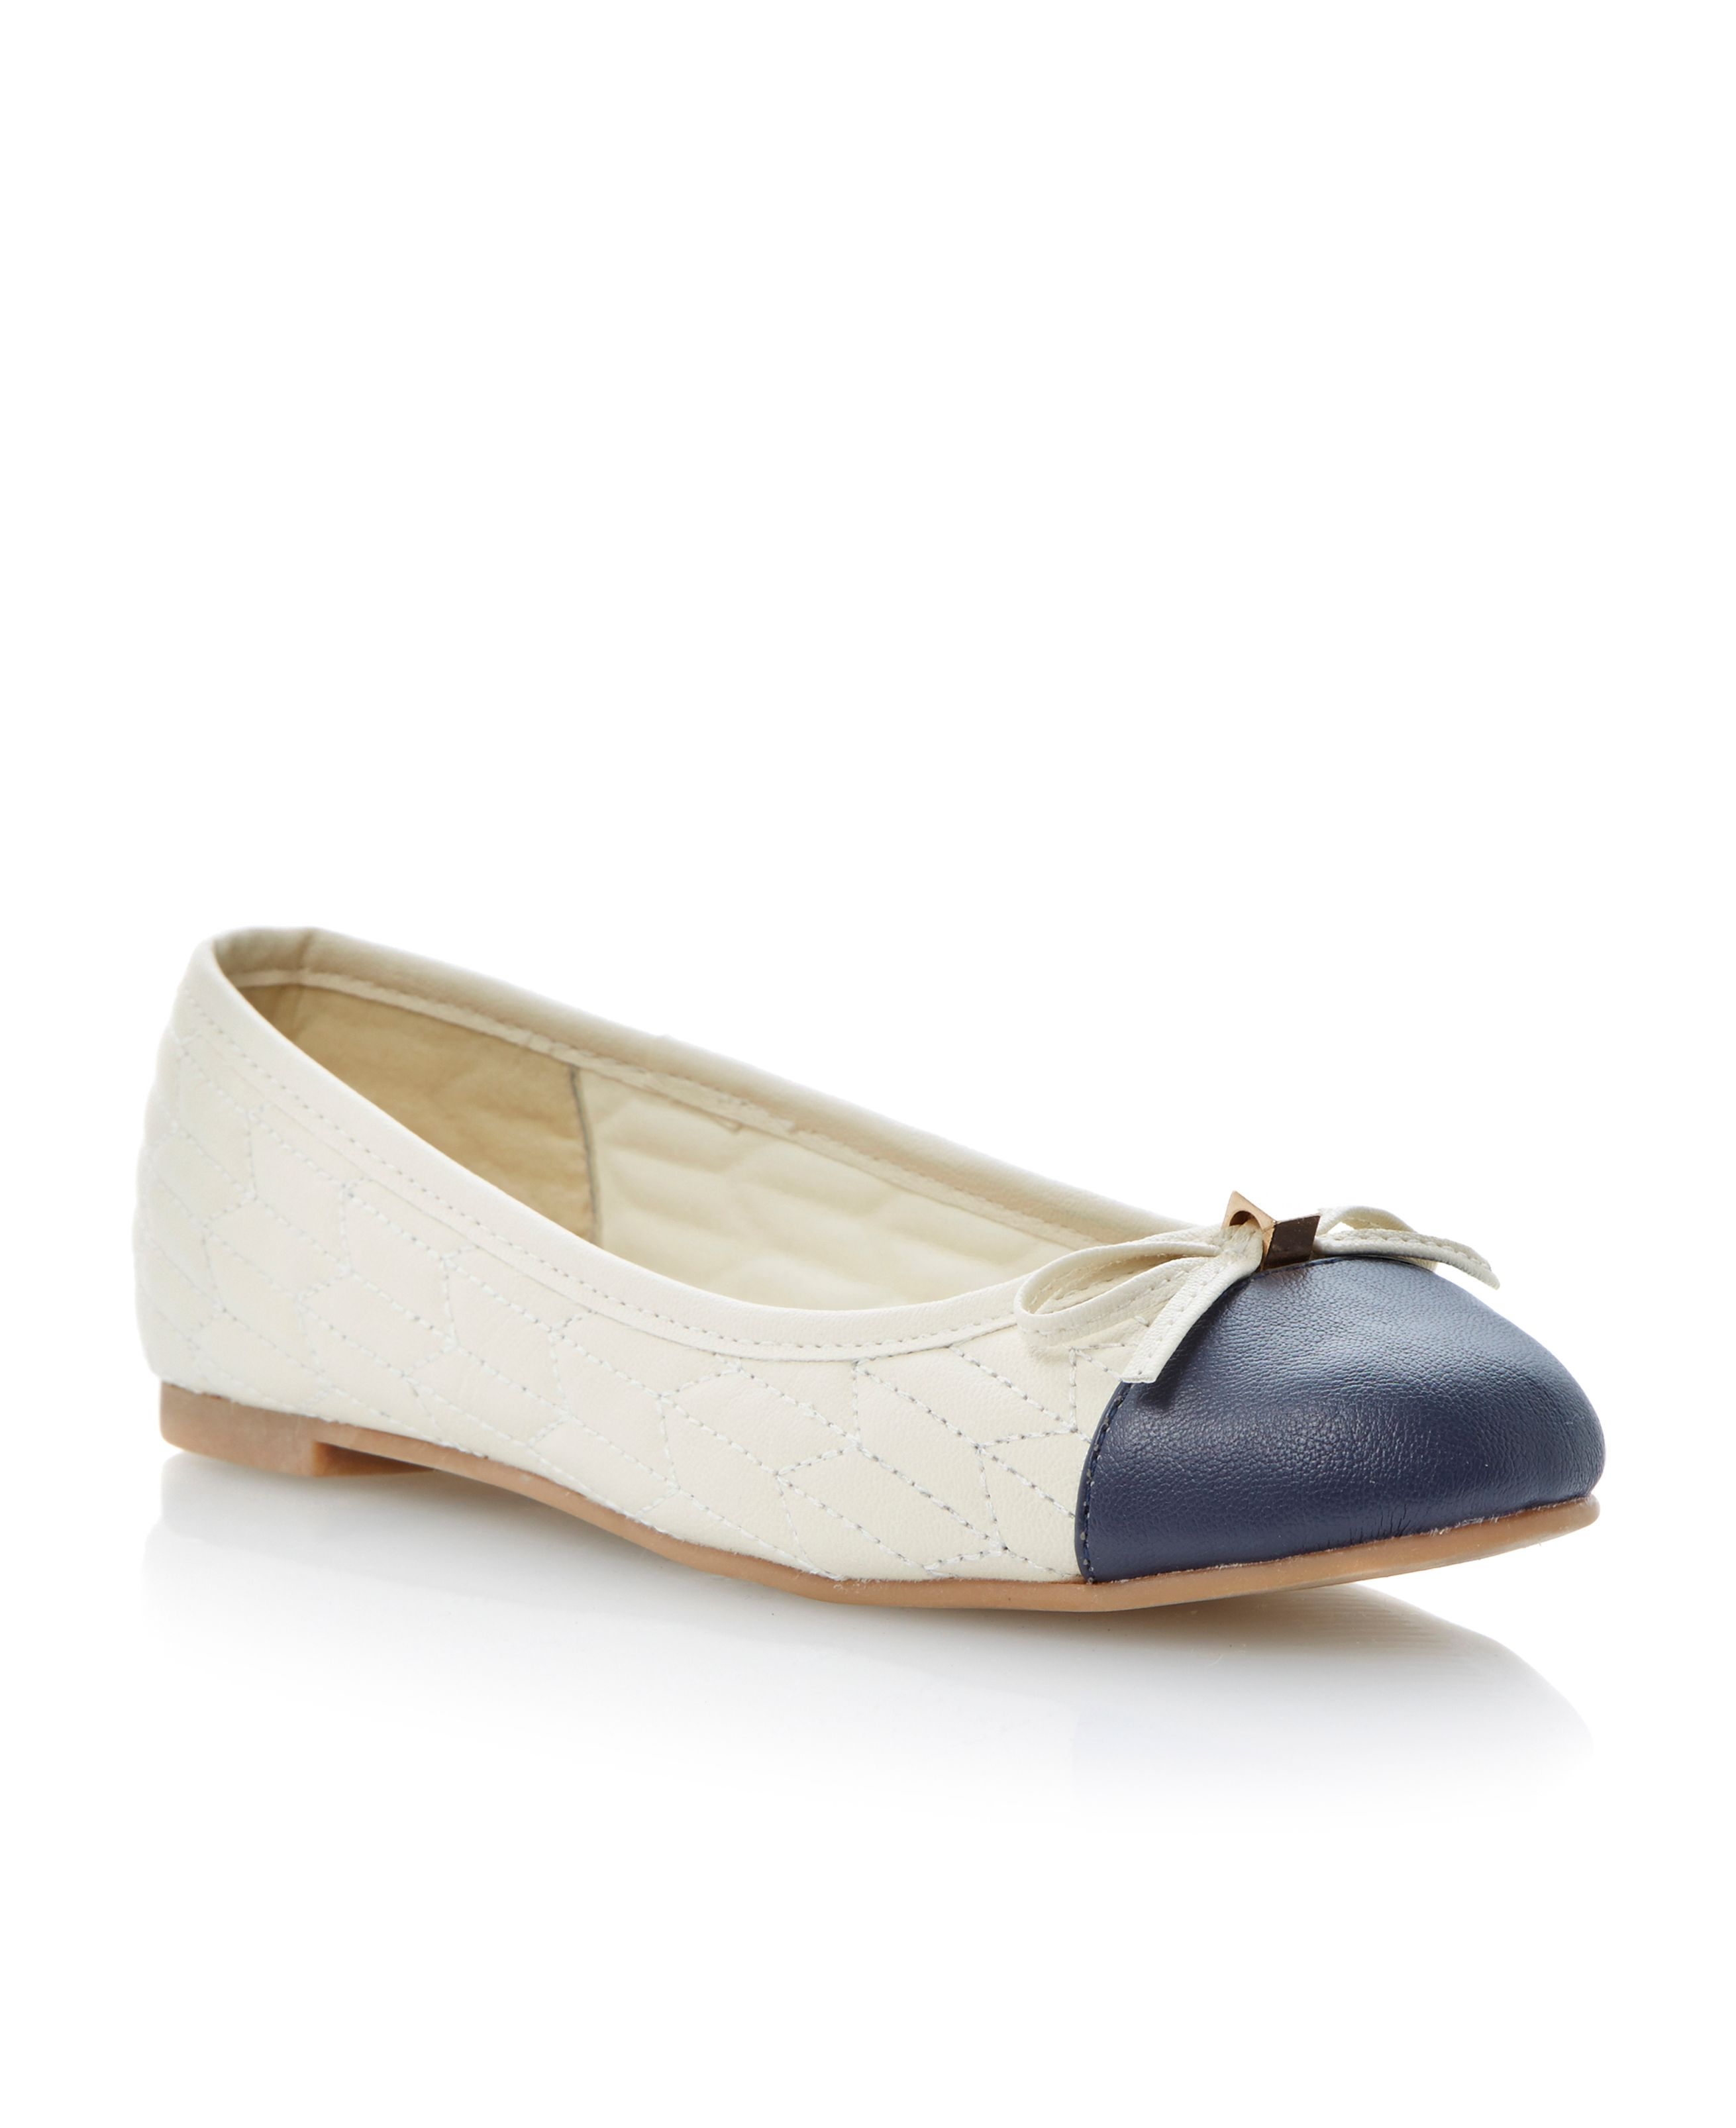 Macadamia almond toe flat ballerina shoes